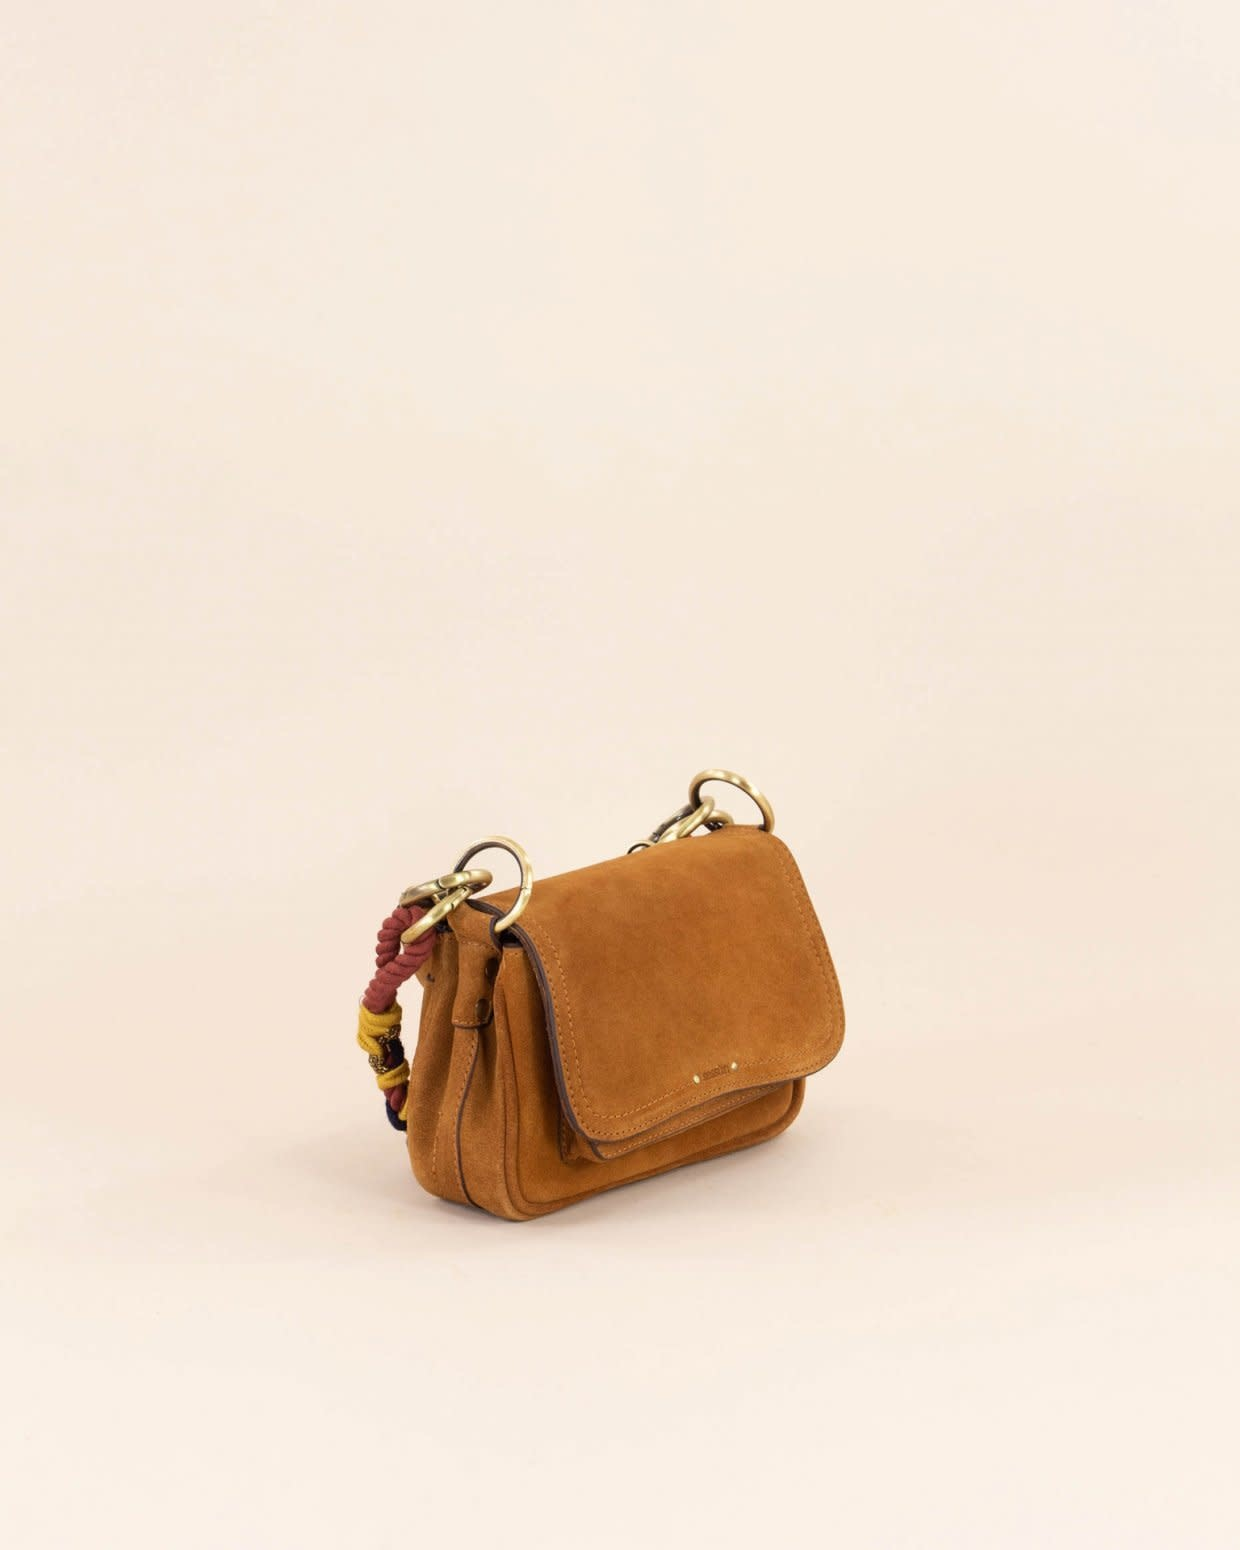 Sessùn Mini tano suede sac